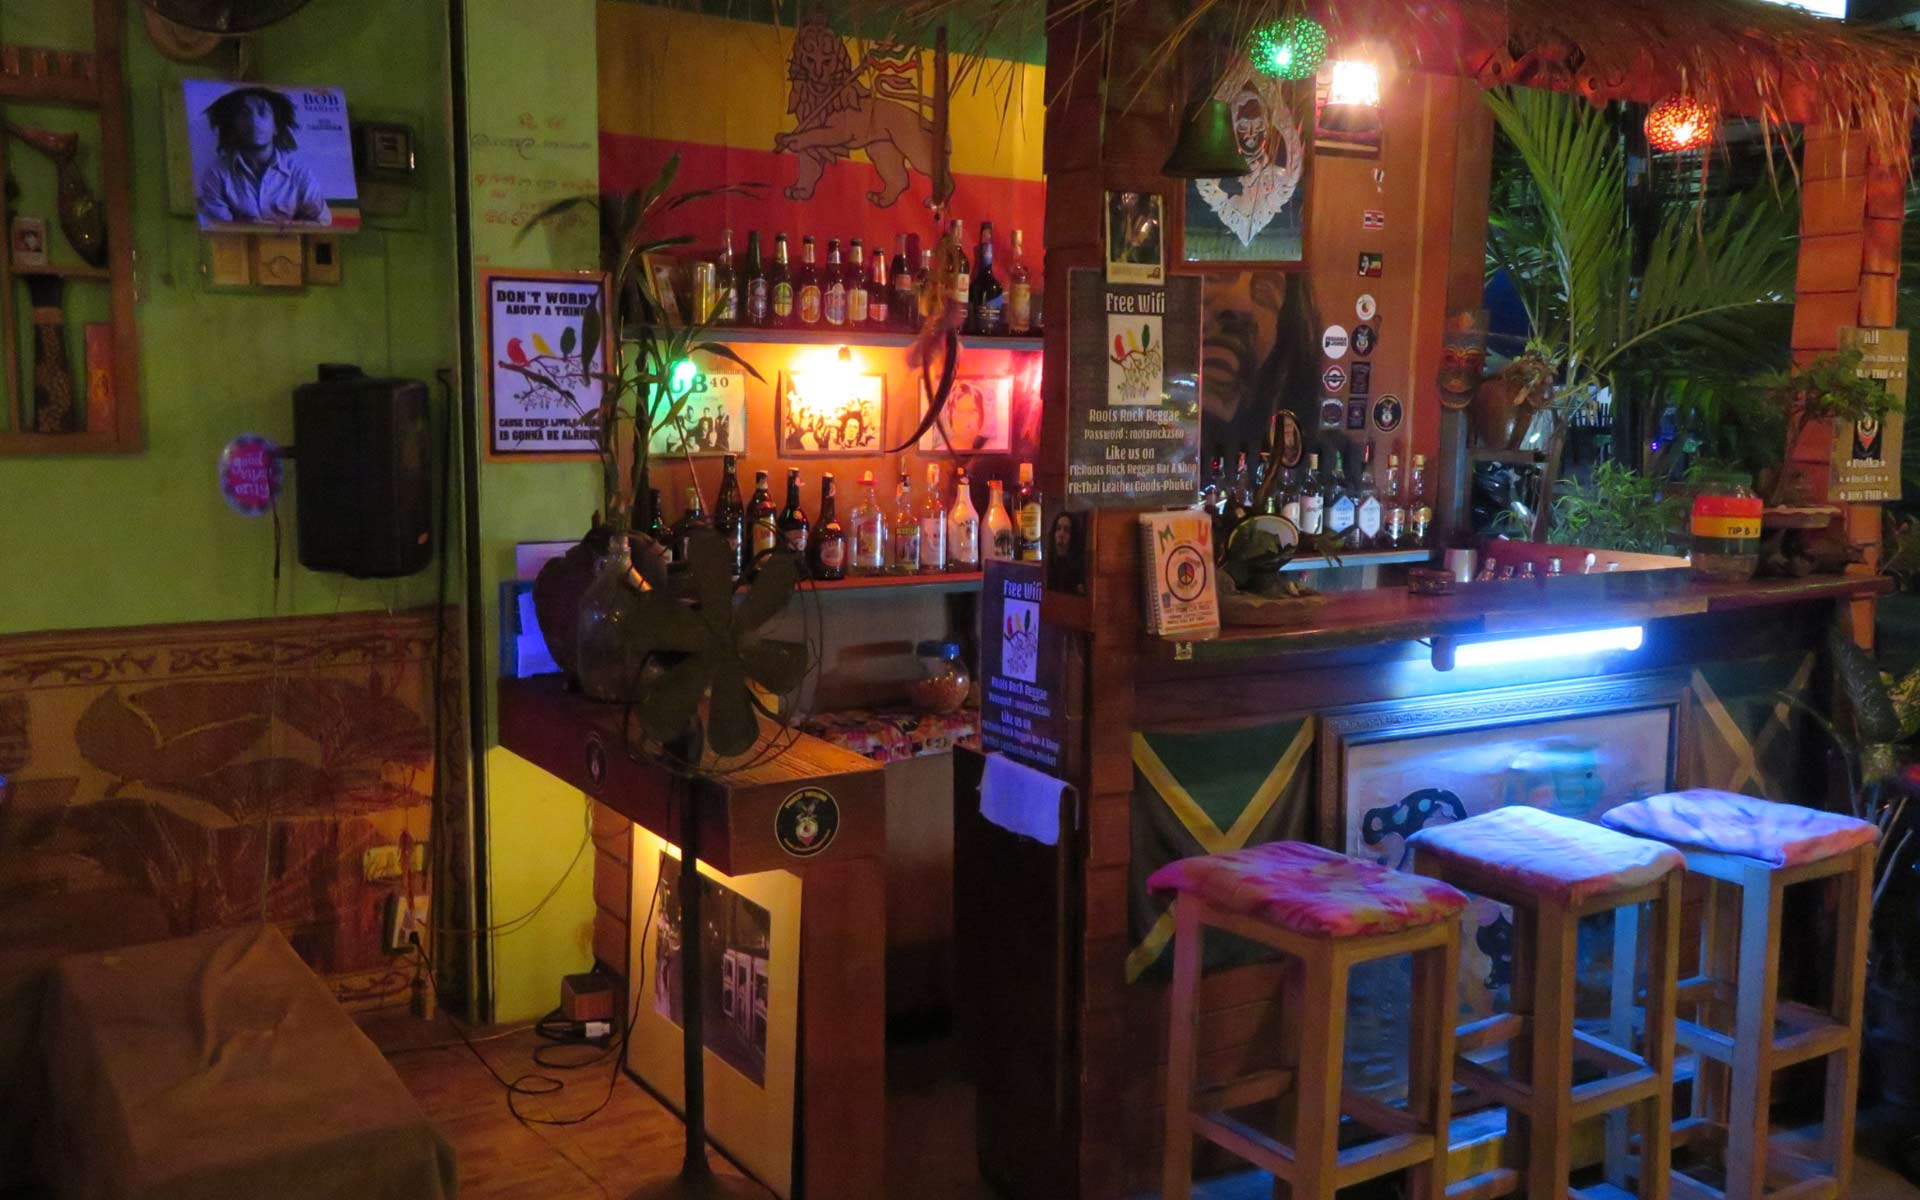 Bar for Reggae music lovers in Patong Beach